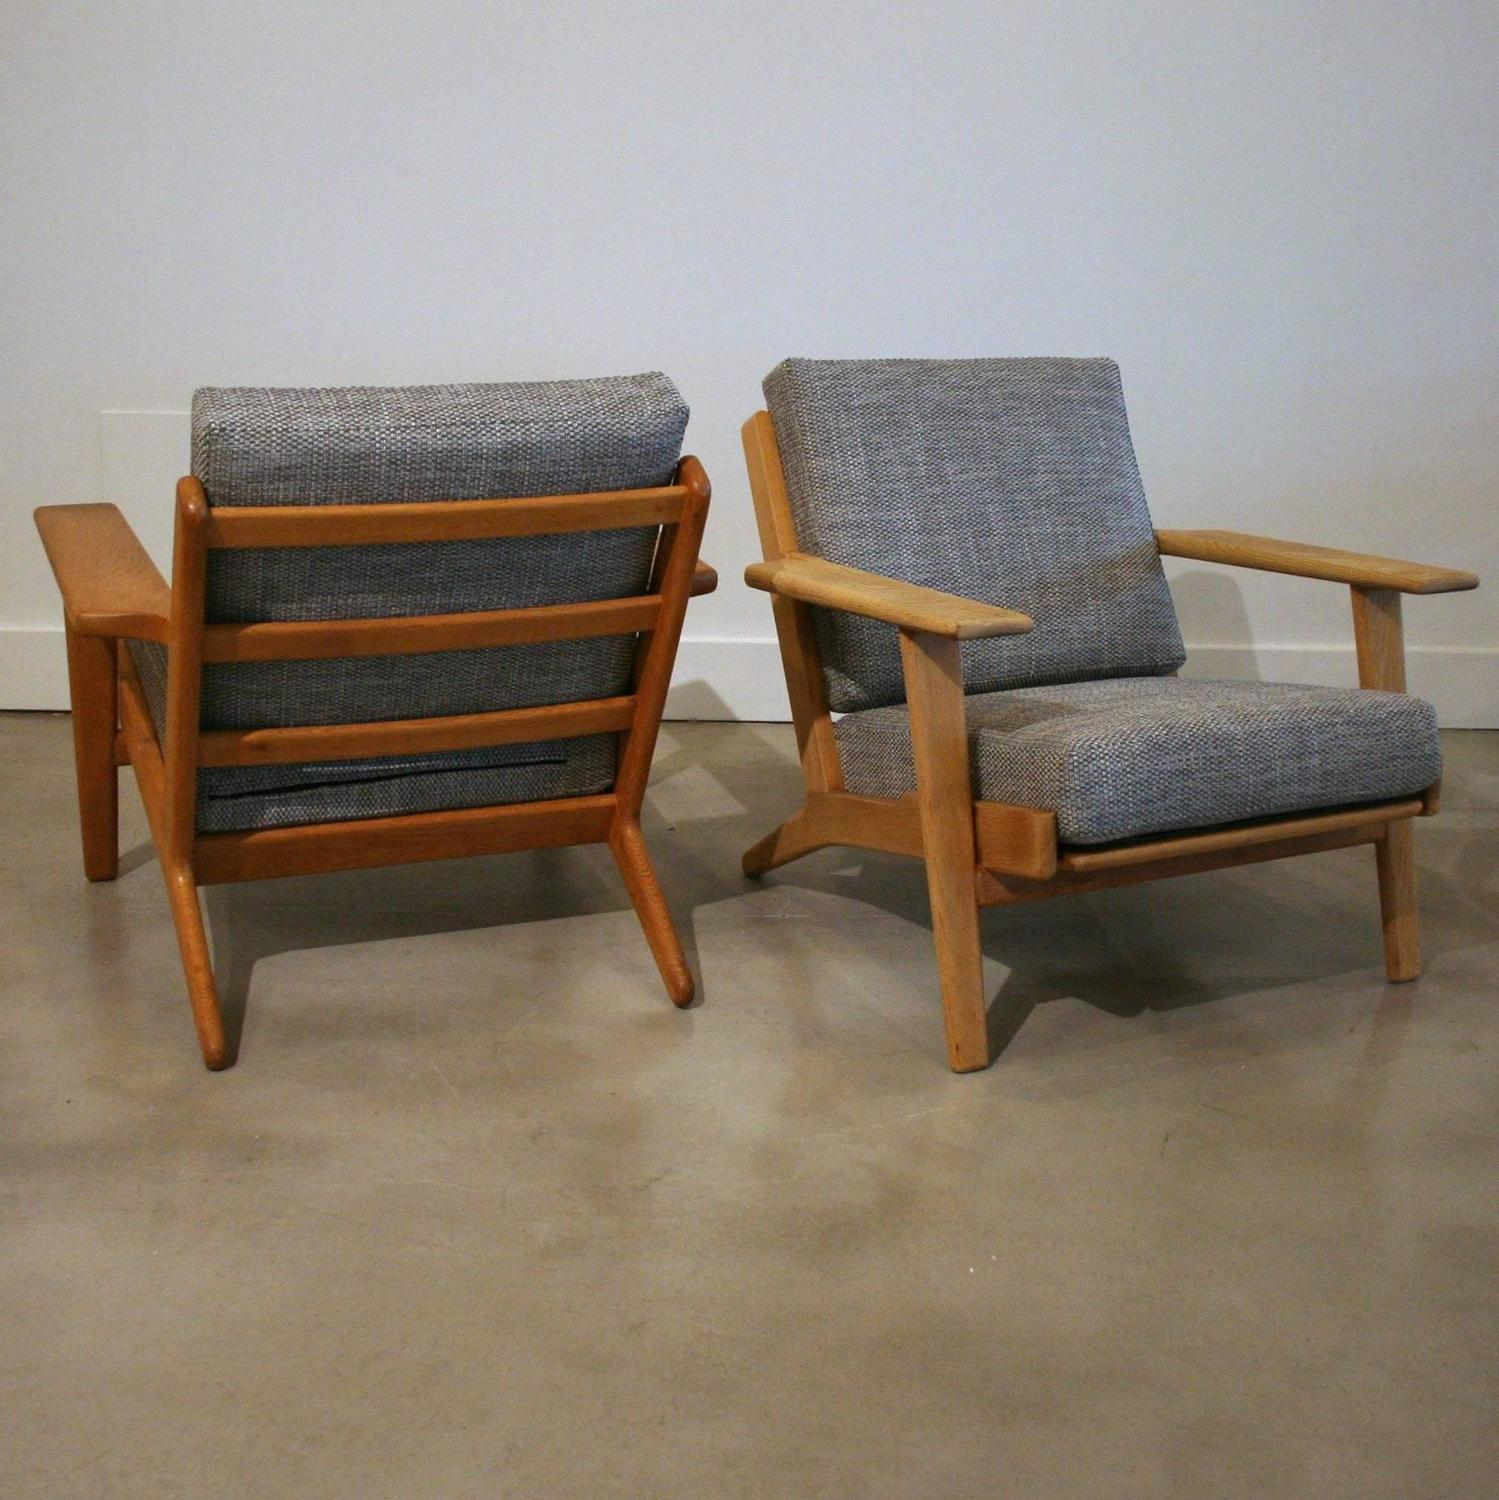 Wenger Chairs Pair Of Vintage Danish Oak Model 290 Lounge Chair By Hans